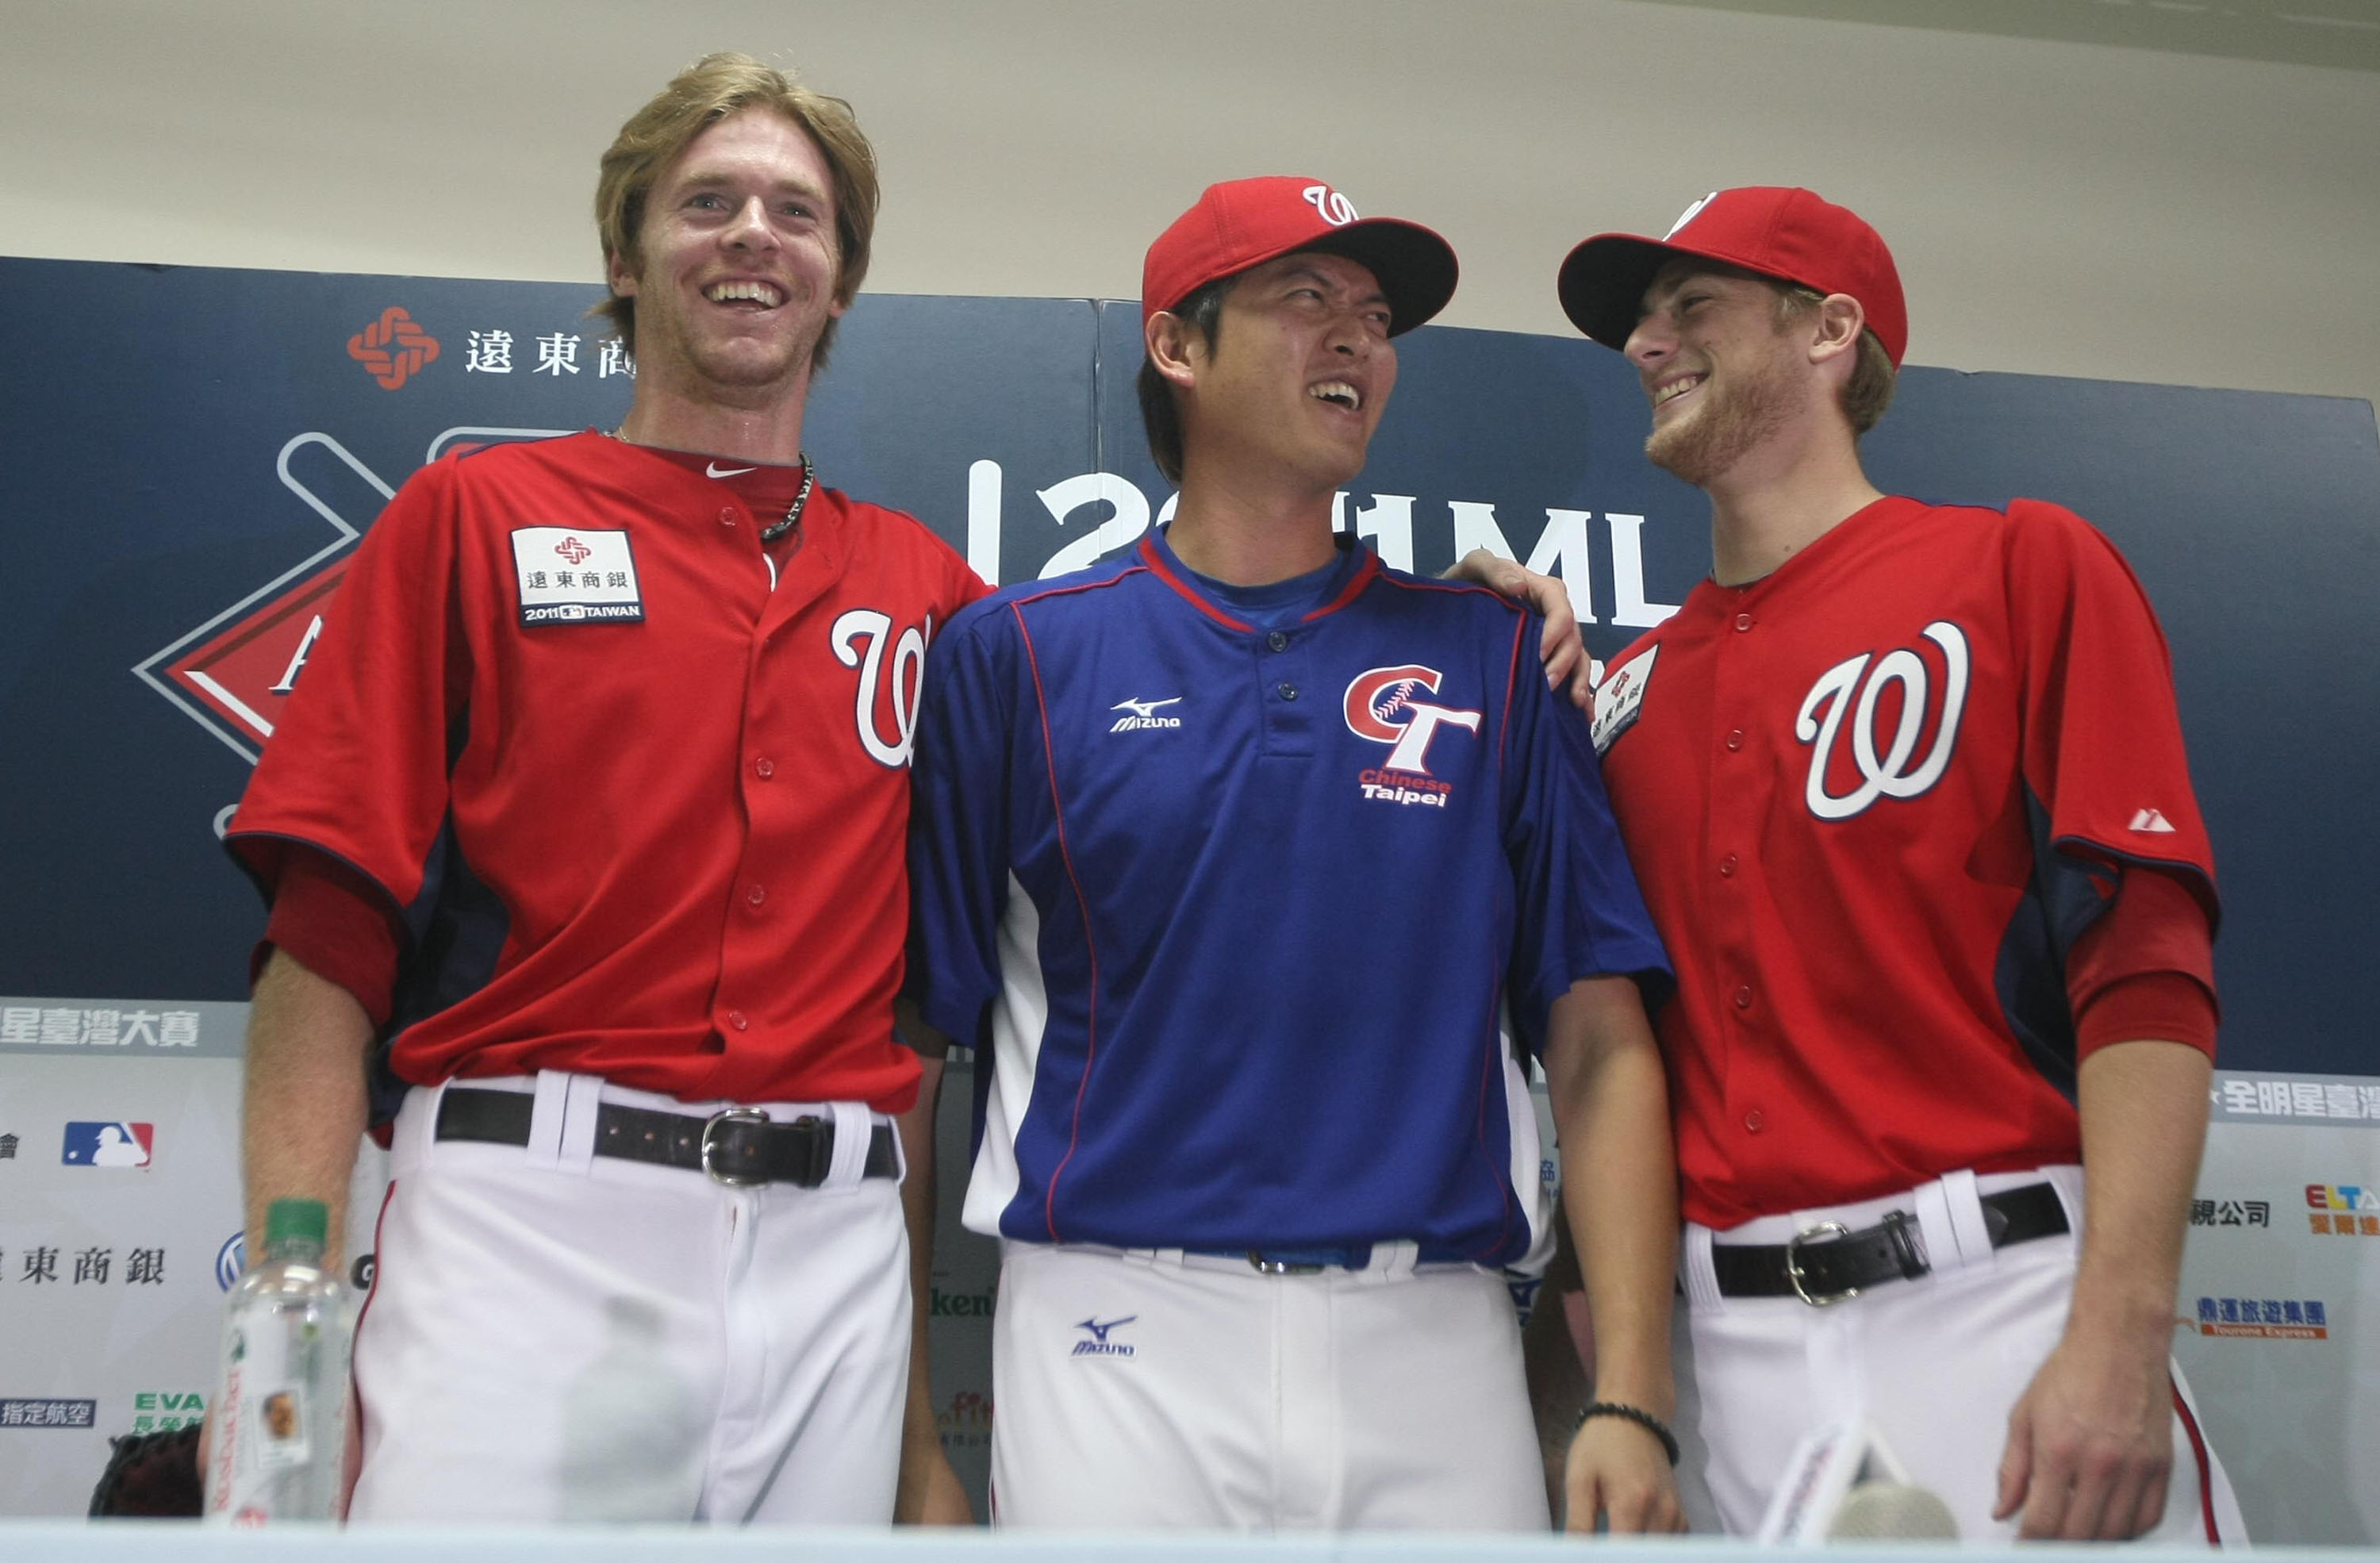 Taiwanese pitcher Chien-Ming Wang (center) talks about his one-year contract with the Washington Nationals at the news conference in Kaohsiung Saturda...